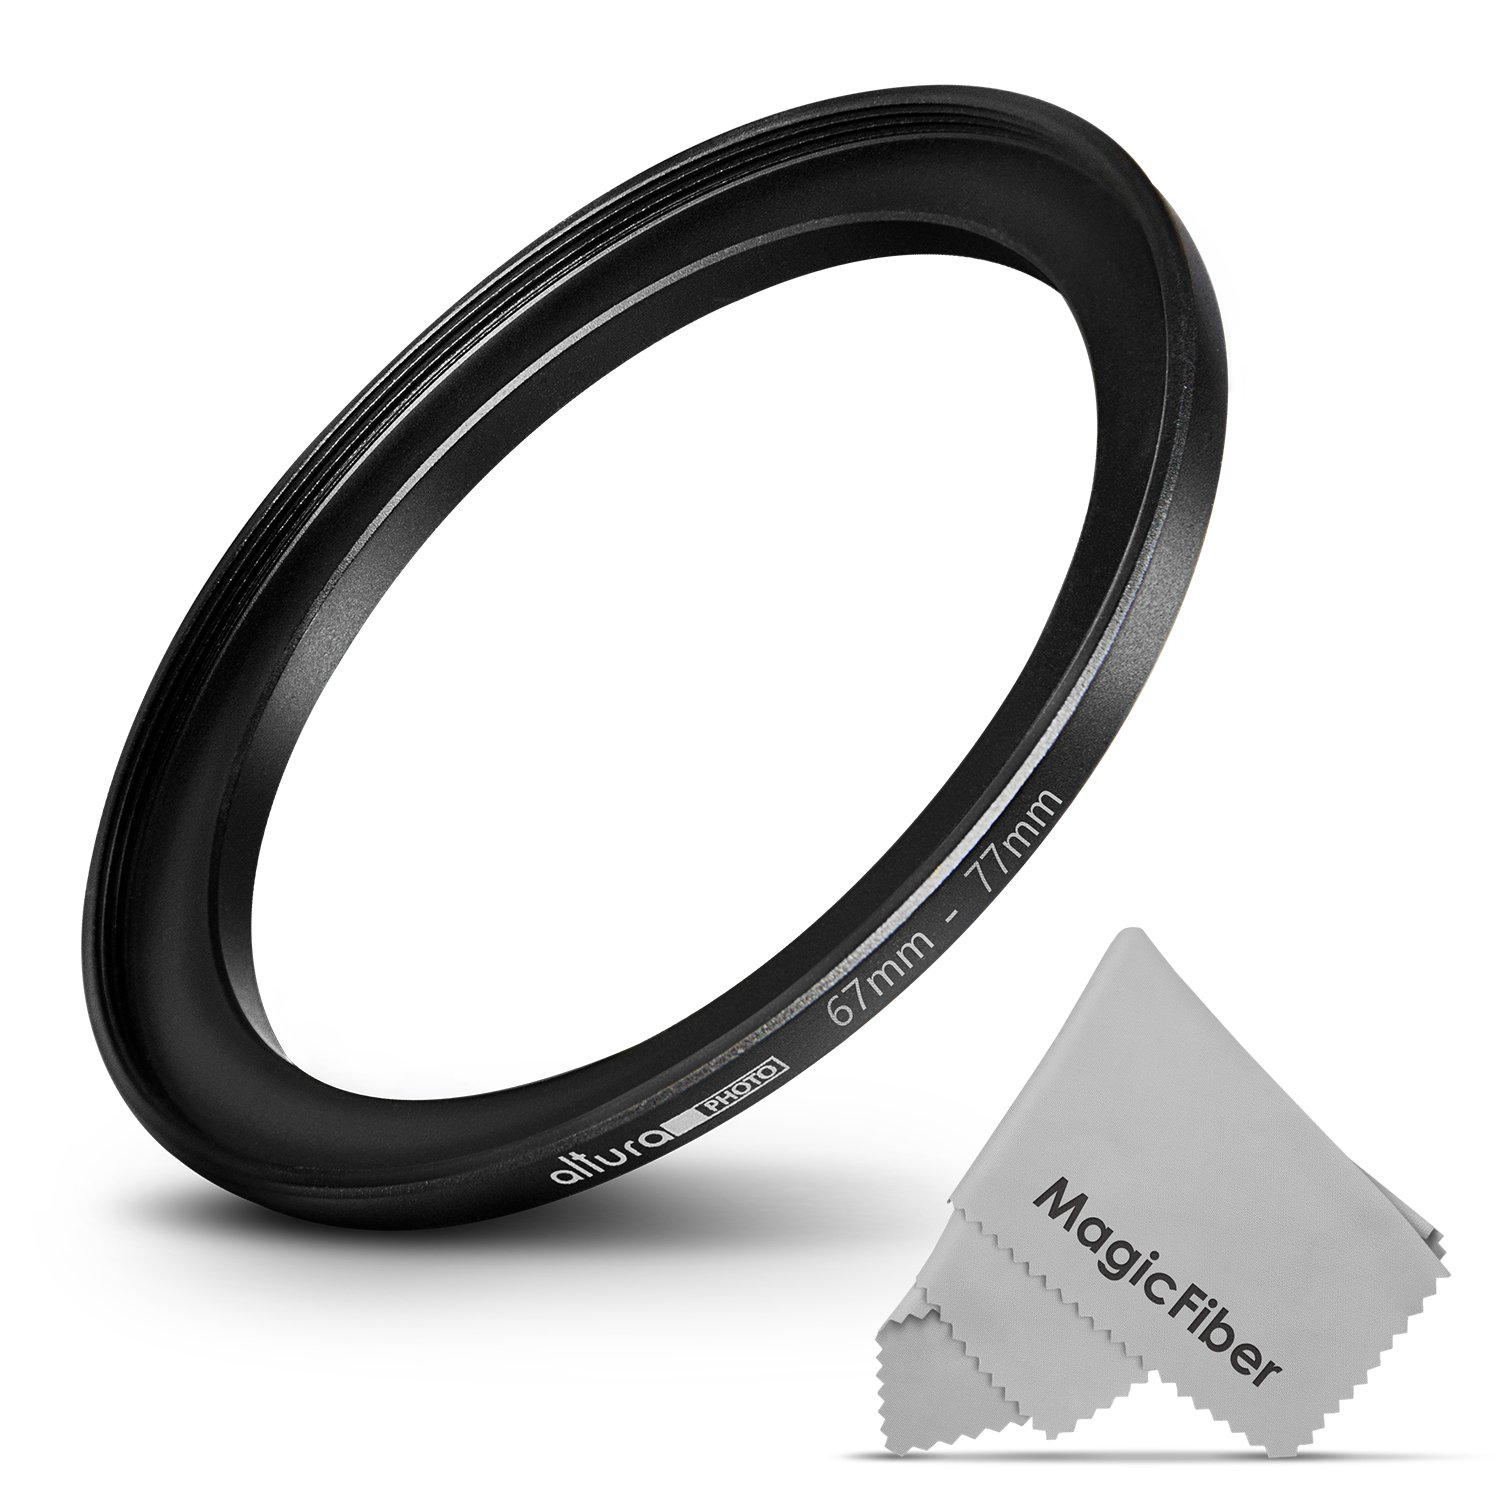 Altura Photo 67-77MM Step-Up Ring Adapter (67MM Lens to 77MM Filter or Accessory) + Premium MagicFiber Cleaning Cloth